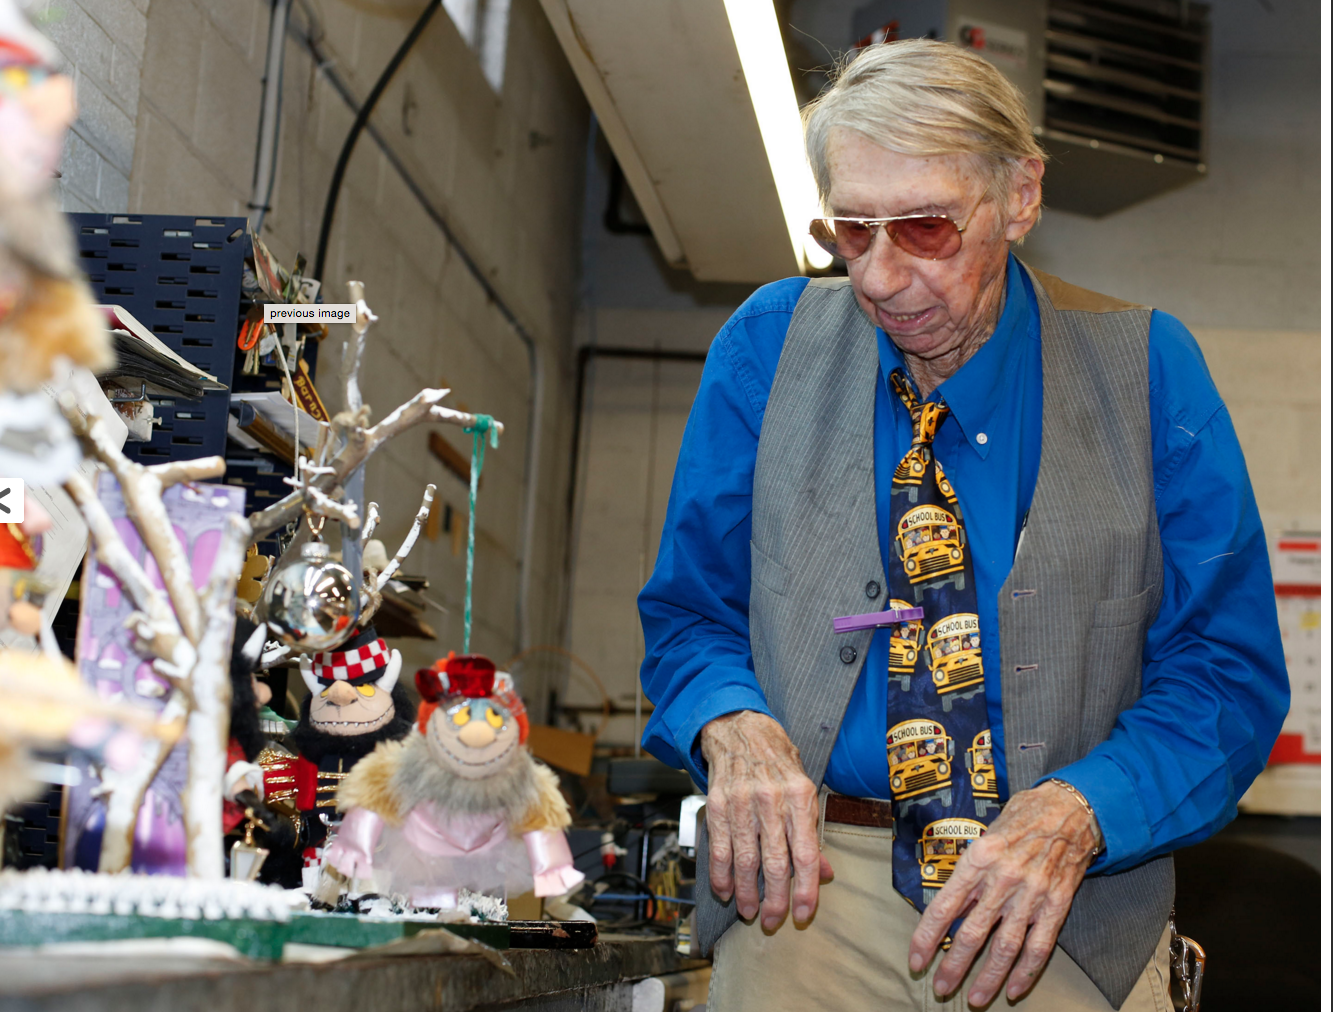 Doug Ahrens displays in the Bourbon County bus garage some of the scenes from 'The Nutcracker' ballet that he recreated using dolls.